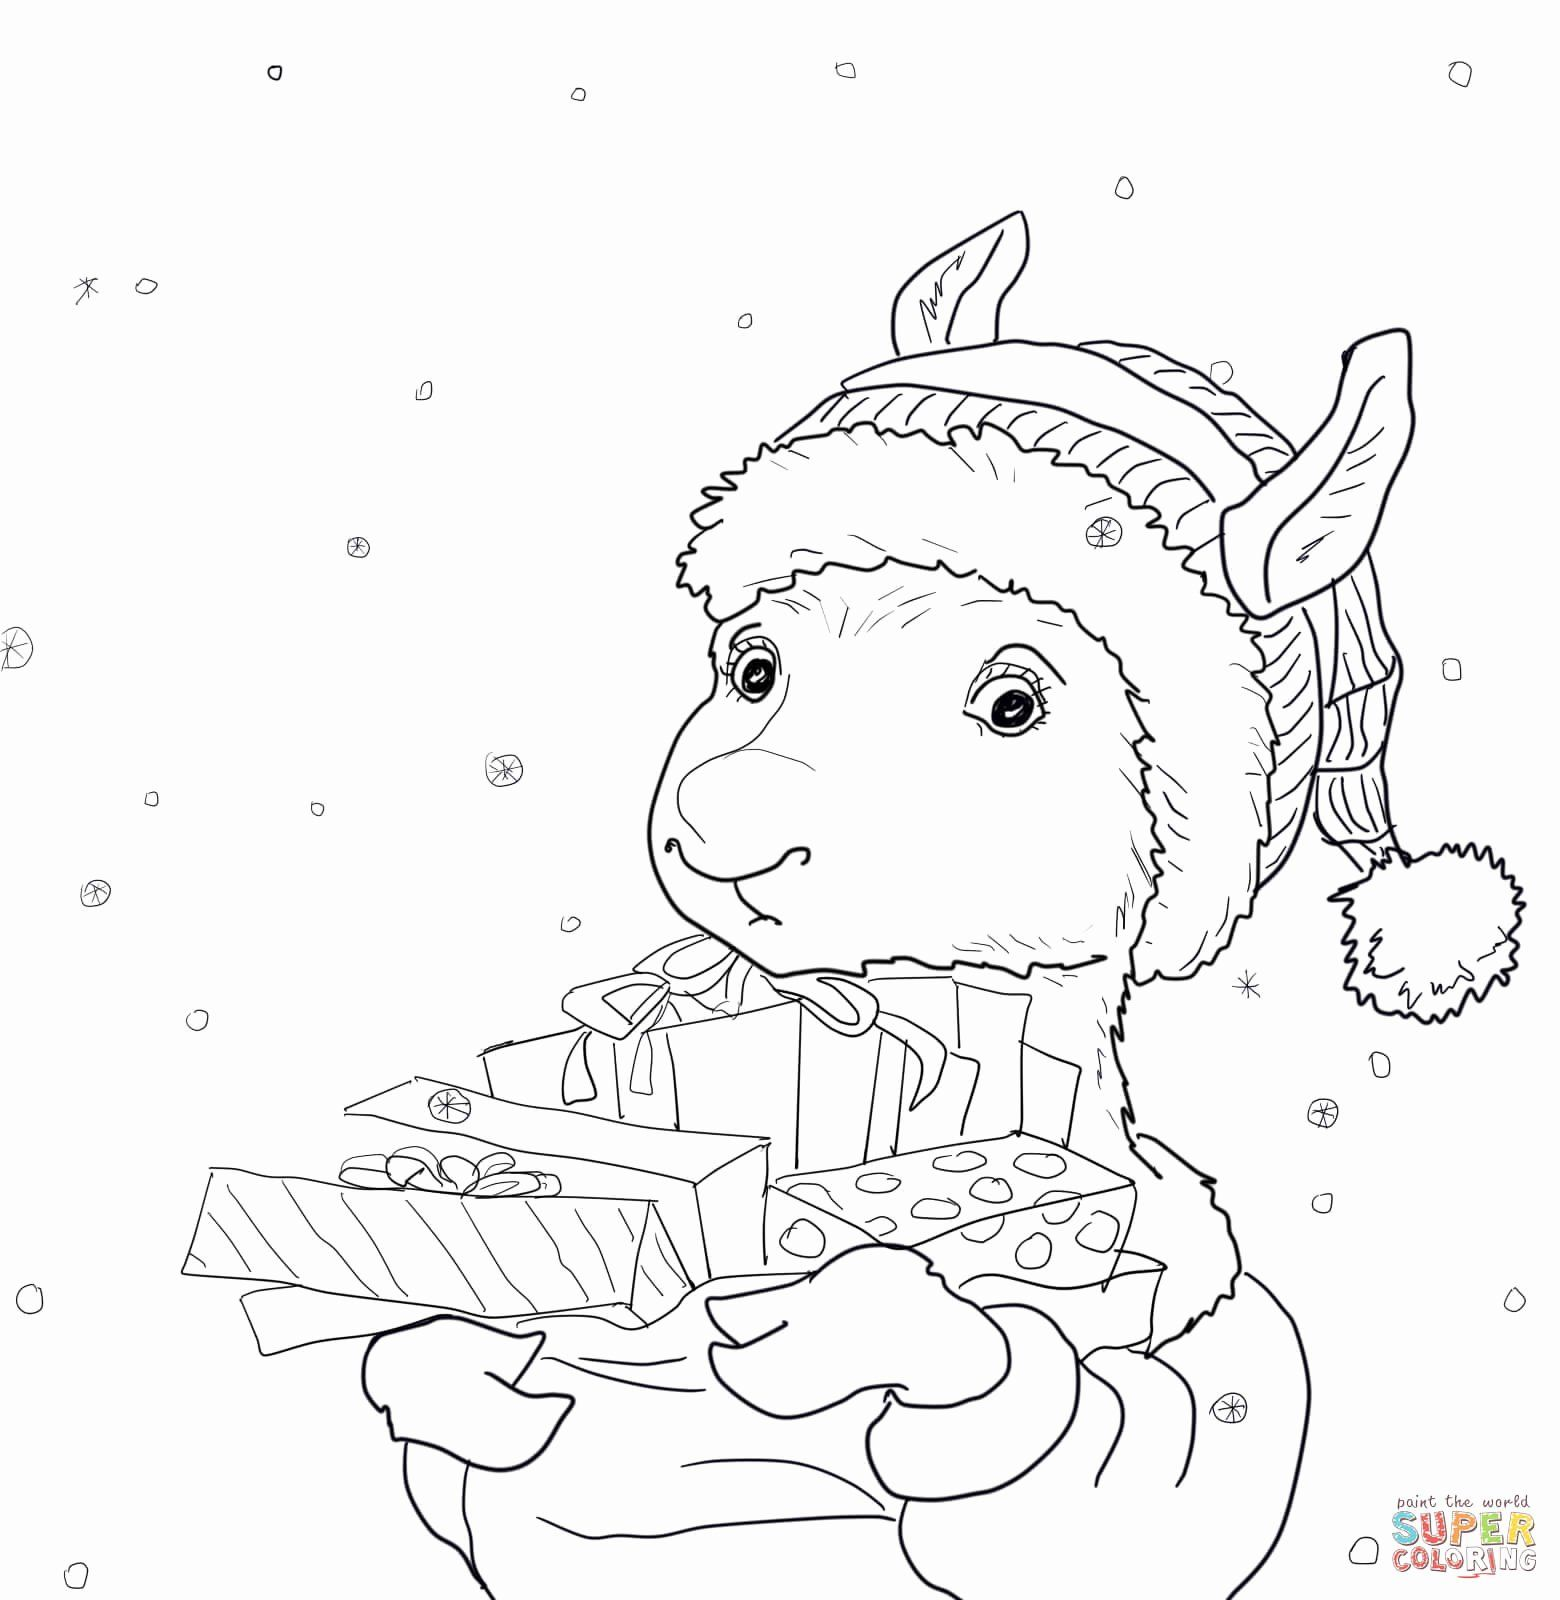 32 Llama Llama Red Pajama Coloring Page In 2020 Coloring Pages